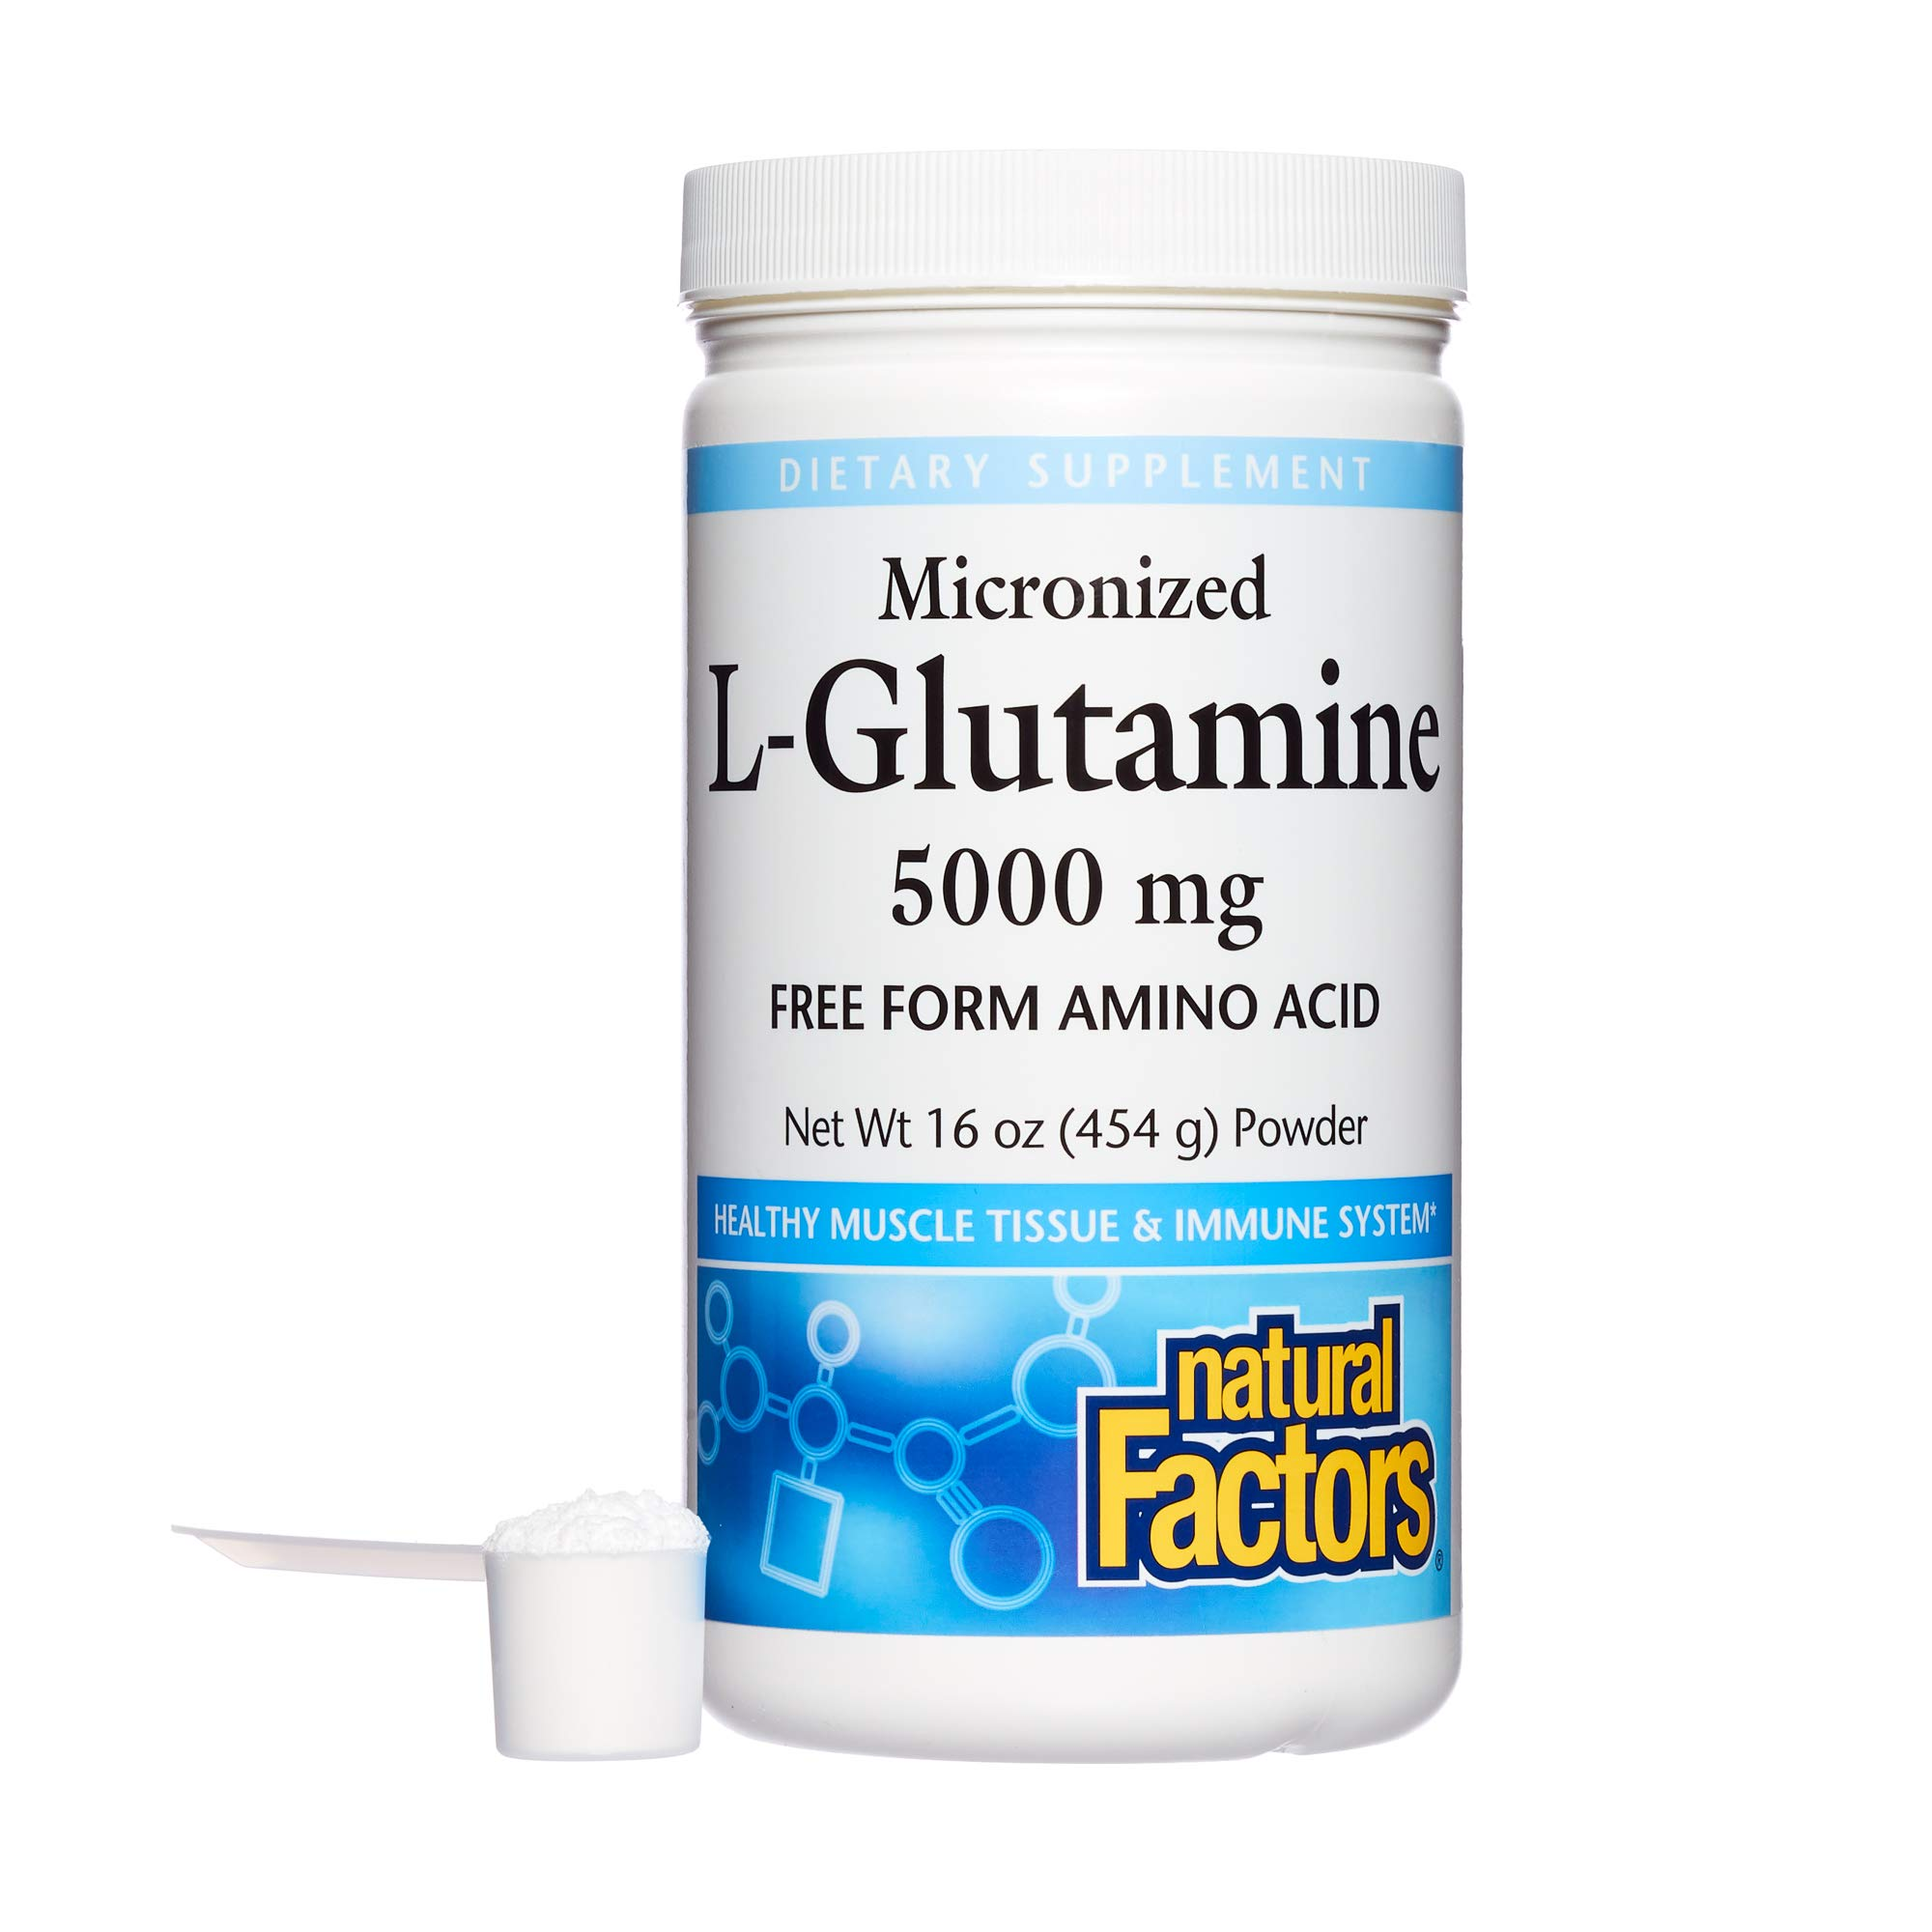 Natural Factors, Micronized L-Glutamine Drink Mix 5000 mg, Supports Healthy Muscle Tissue and Immune System Function, 16 oz (90 Servings) by Natural Factors